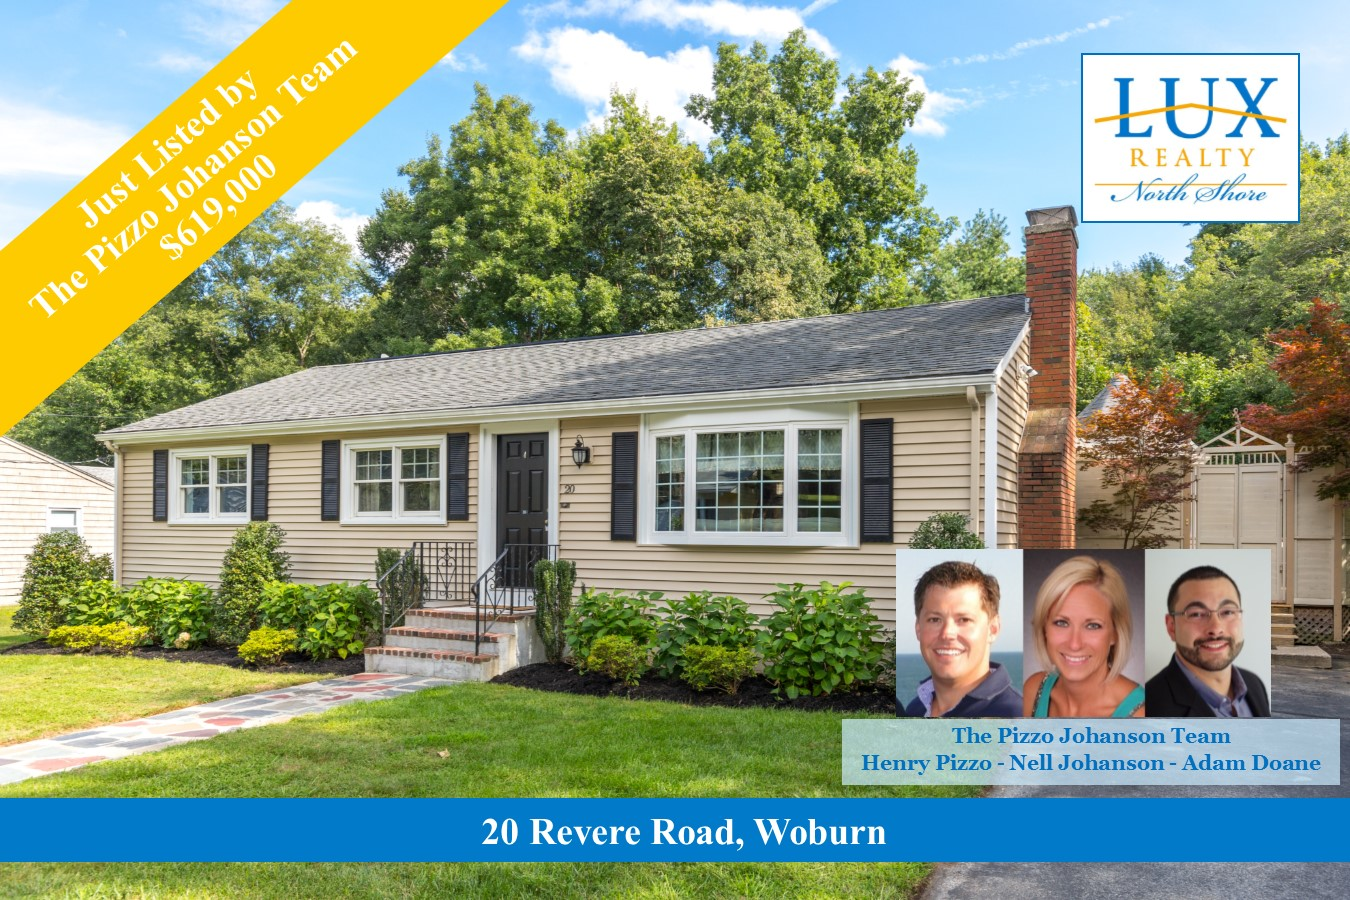 Woburn Homes for Sale